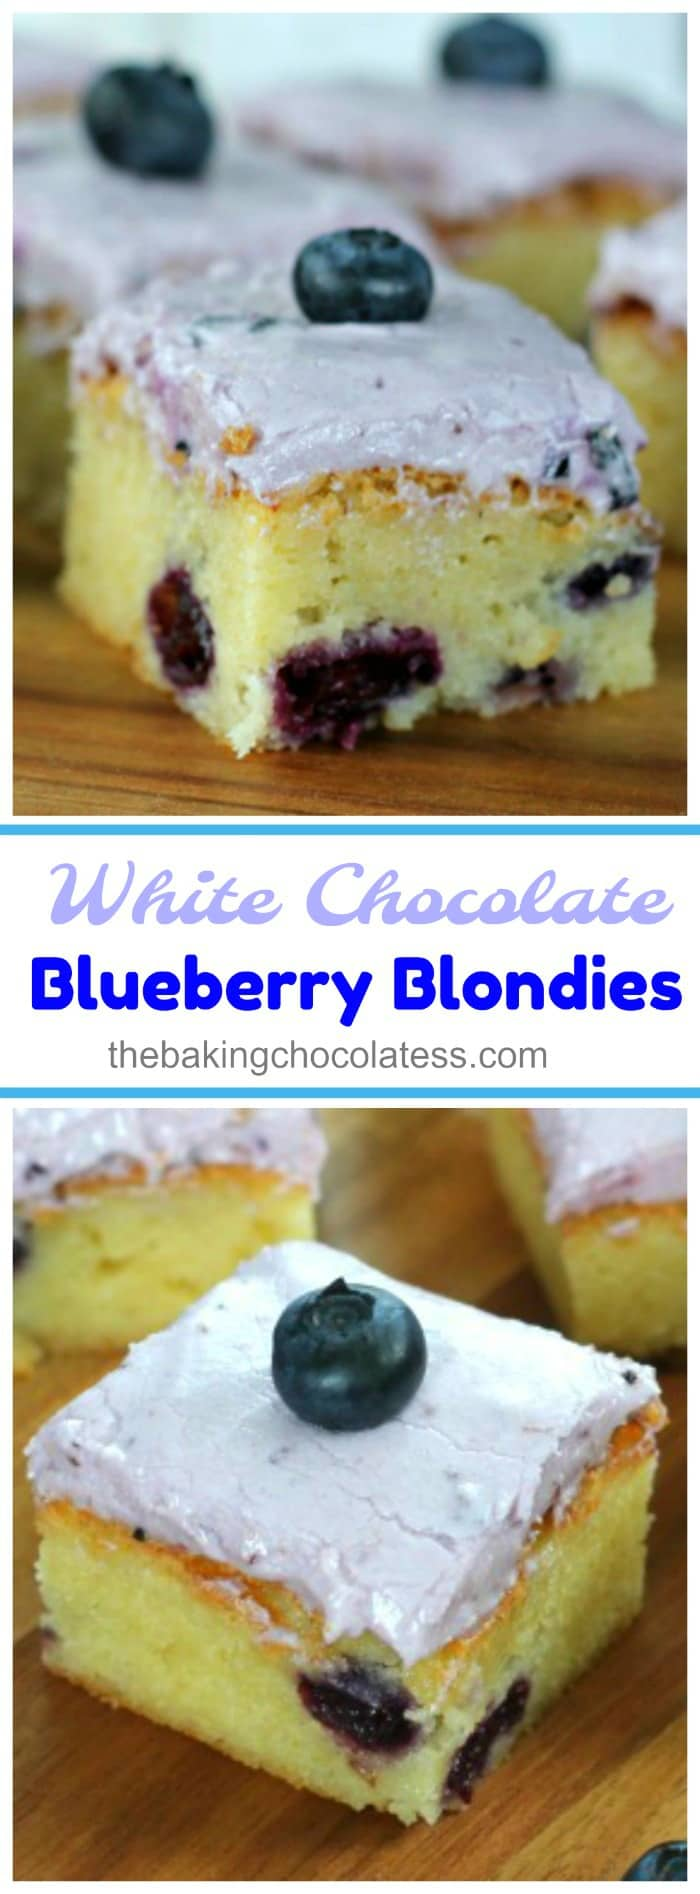 White Chocolate Blueberry Blondies  - These thick and chewy White Chocolate Blueberry Blondies are wonderfully enhanced with juicy blueberries with a hint of white chocolate and are topped with a tempting, creamy white chocolate blueberry cream cheese frosting. Yum!!